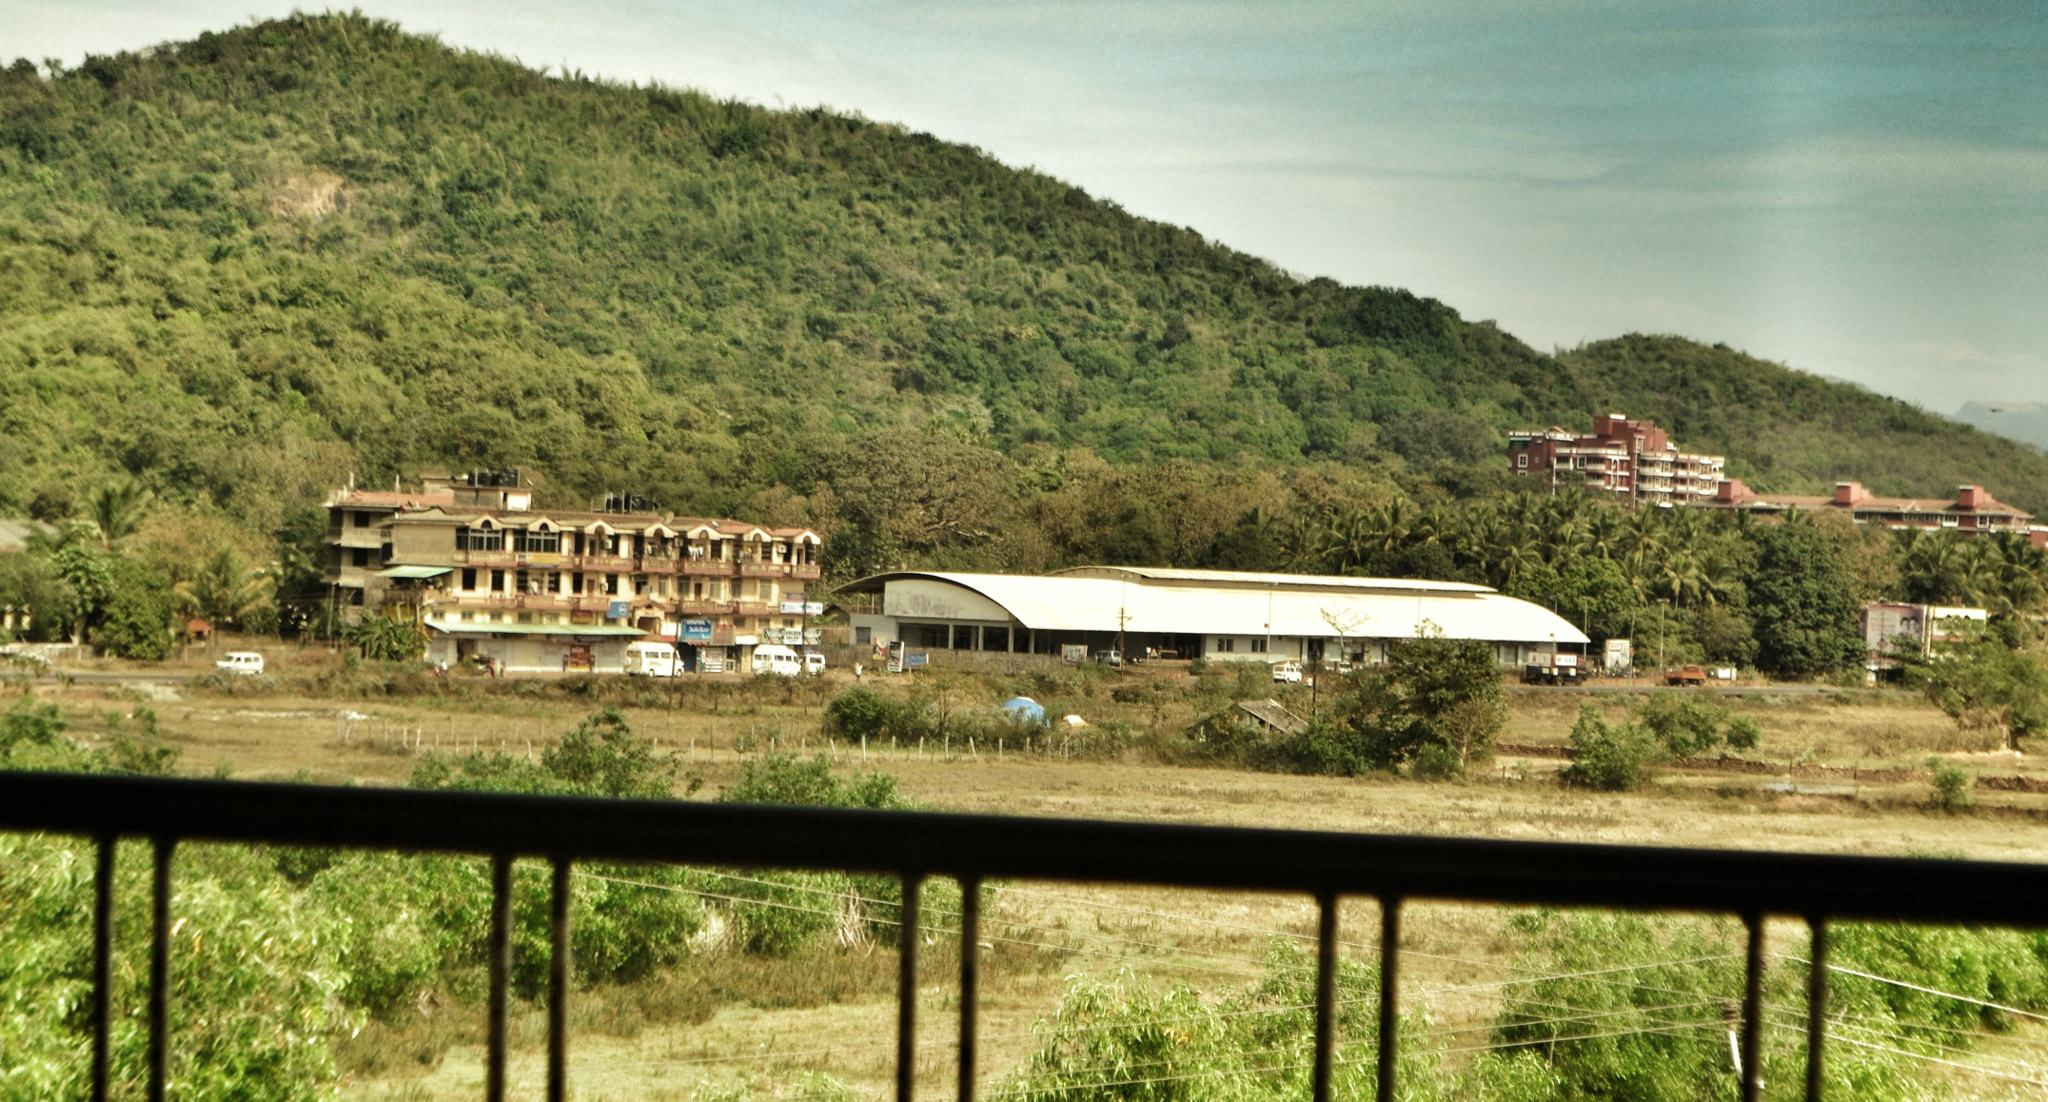 The view of the Kadamba Bus station at Chaudi near Canacona Railway Station in Goa